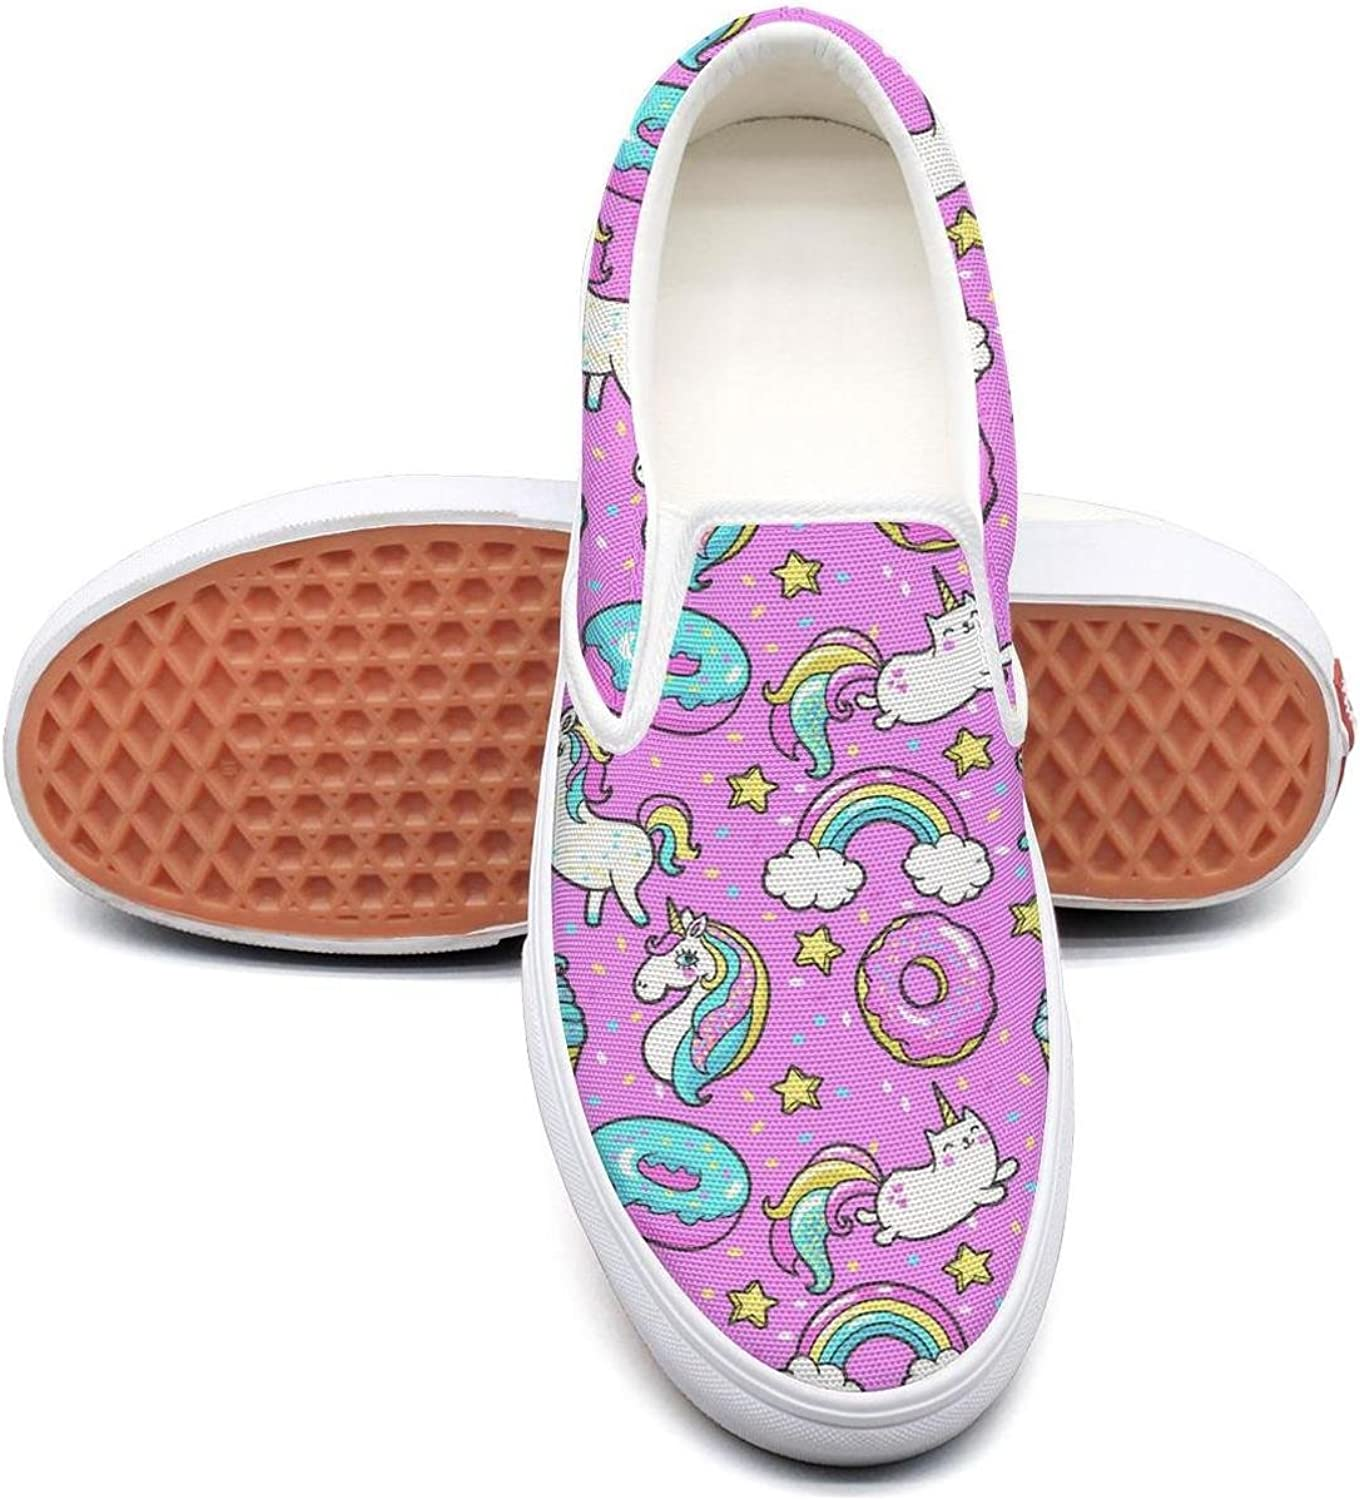 Dutte Lisa Women's Glazed Donuts and Unicorn Casual shoes Laces Low Canvas Slip on Sneakers